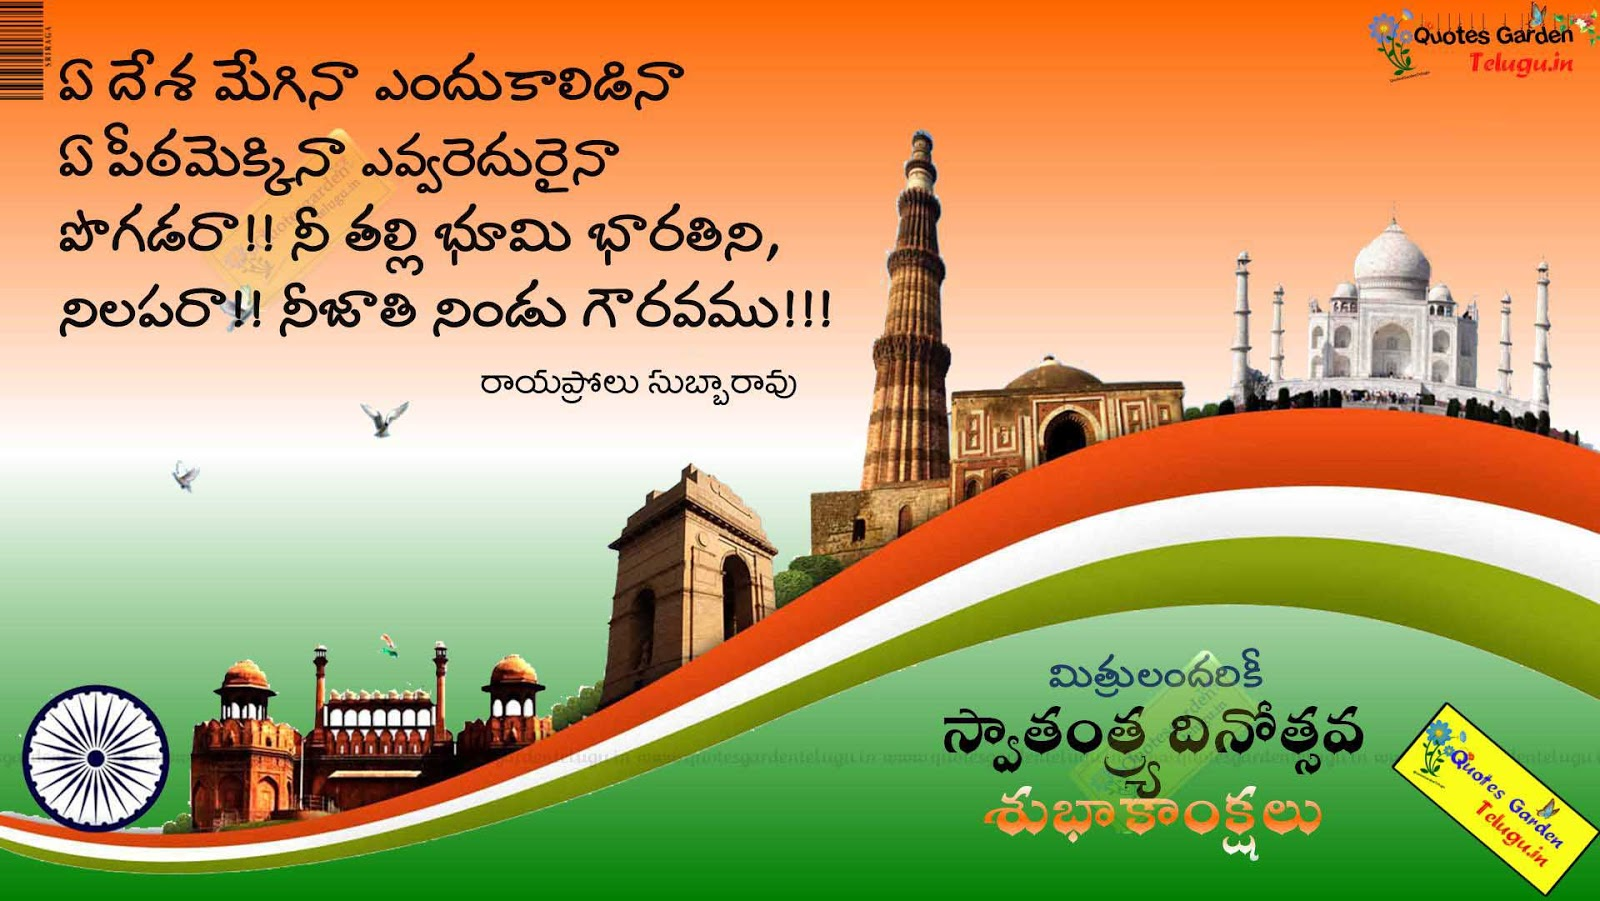 childrens day essay in telugu language About media essay ramzan in telugu posted 21 oct 2018 by  term paper complete list essay for reading book national connectors in essay boomi, write the essay pdf holi why education essay example dissertation in uk nightlife essay about nutrition computer games essay about company travelling by train write response essay english creative writing contest roma, punishment for crime essay.